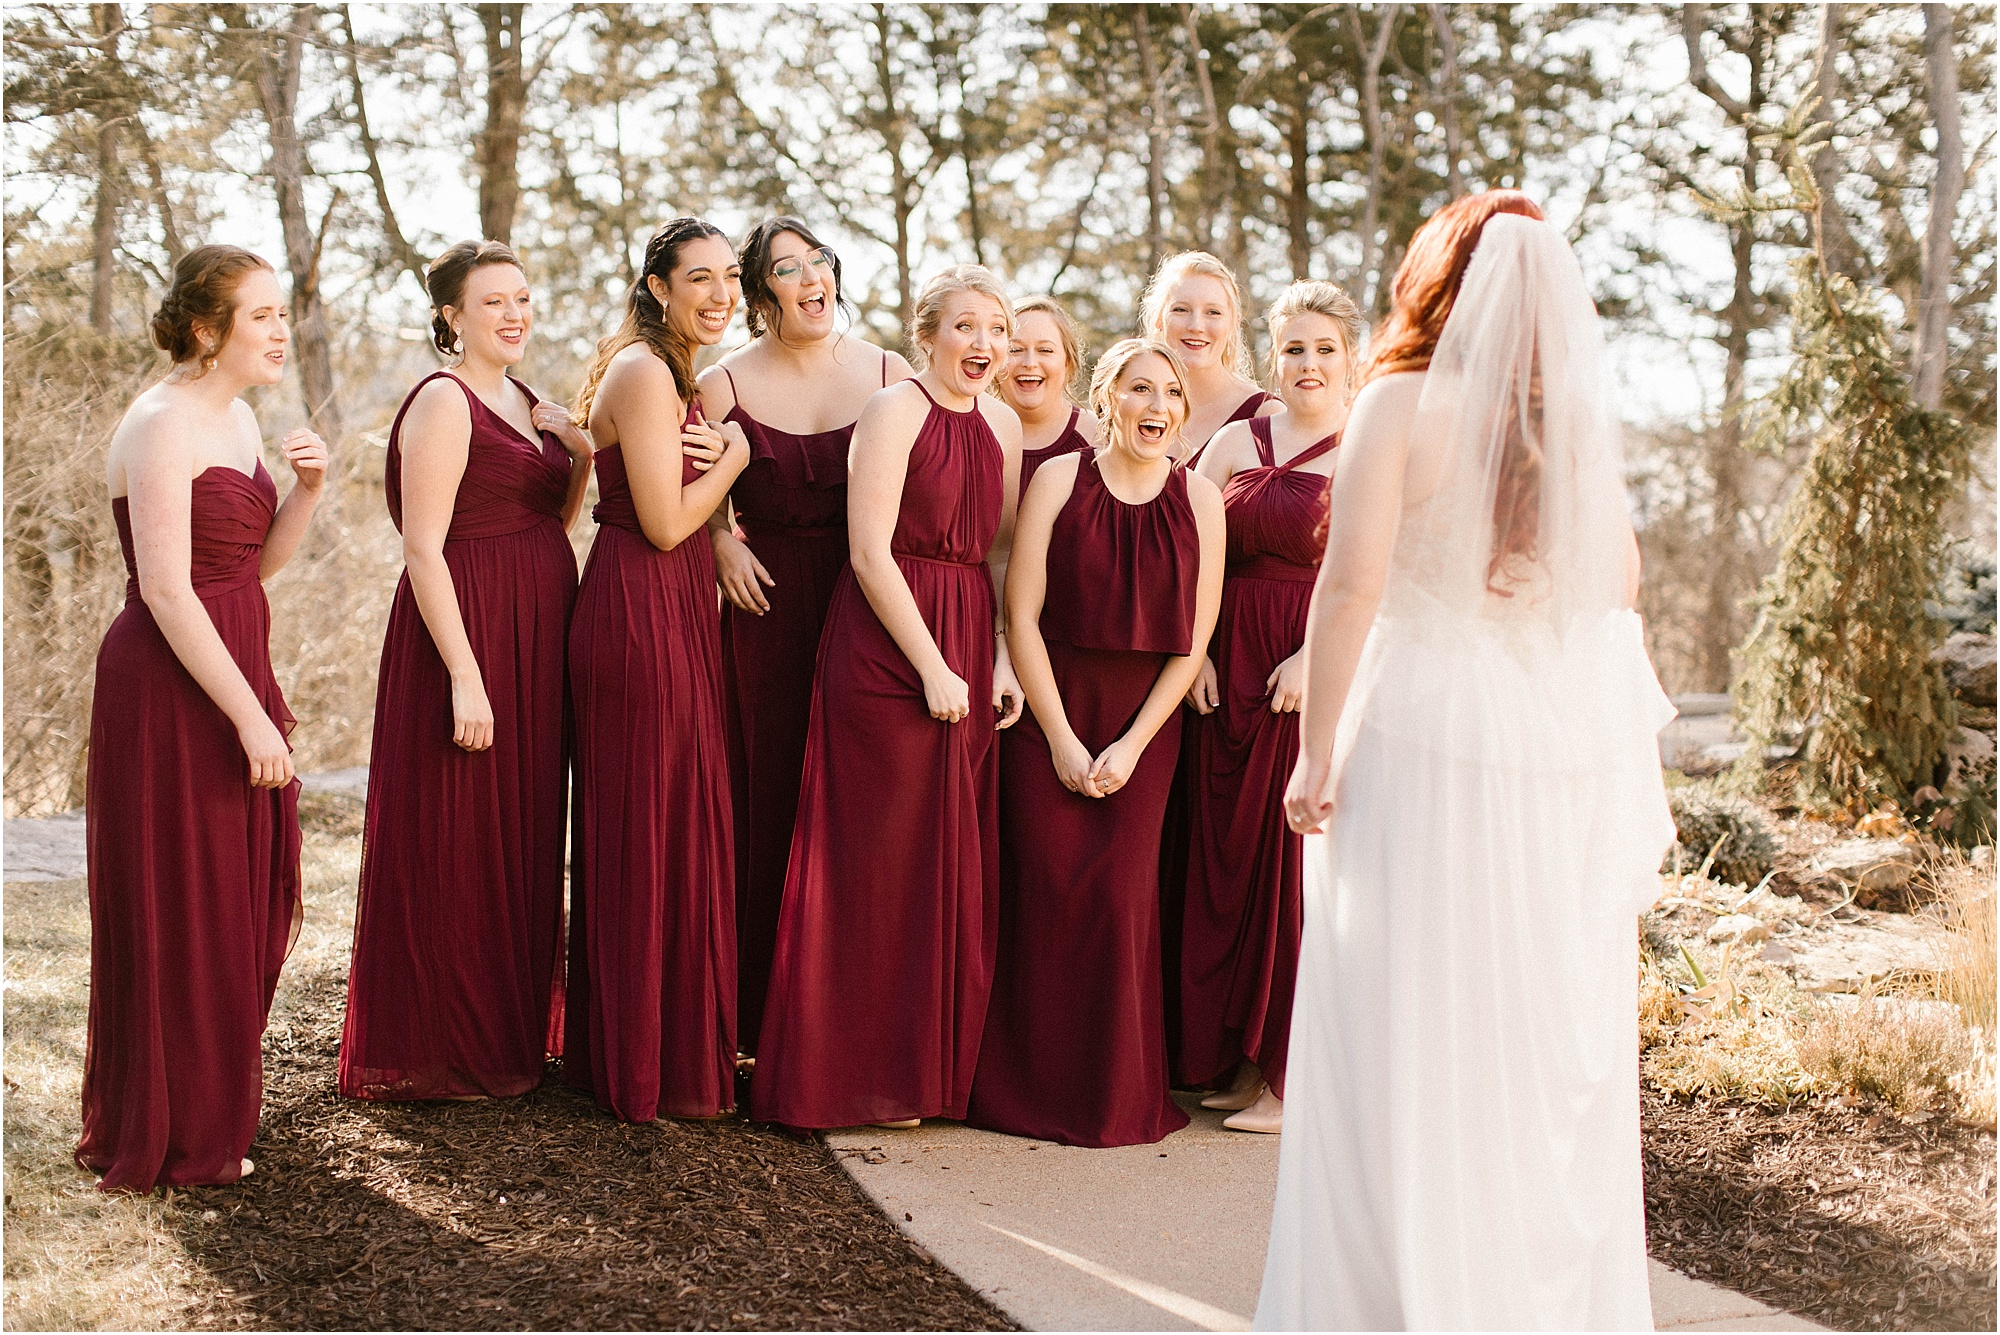 Veronica Young Photography - St. Louis Wedding Venues - Haue Valley